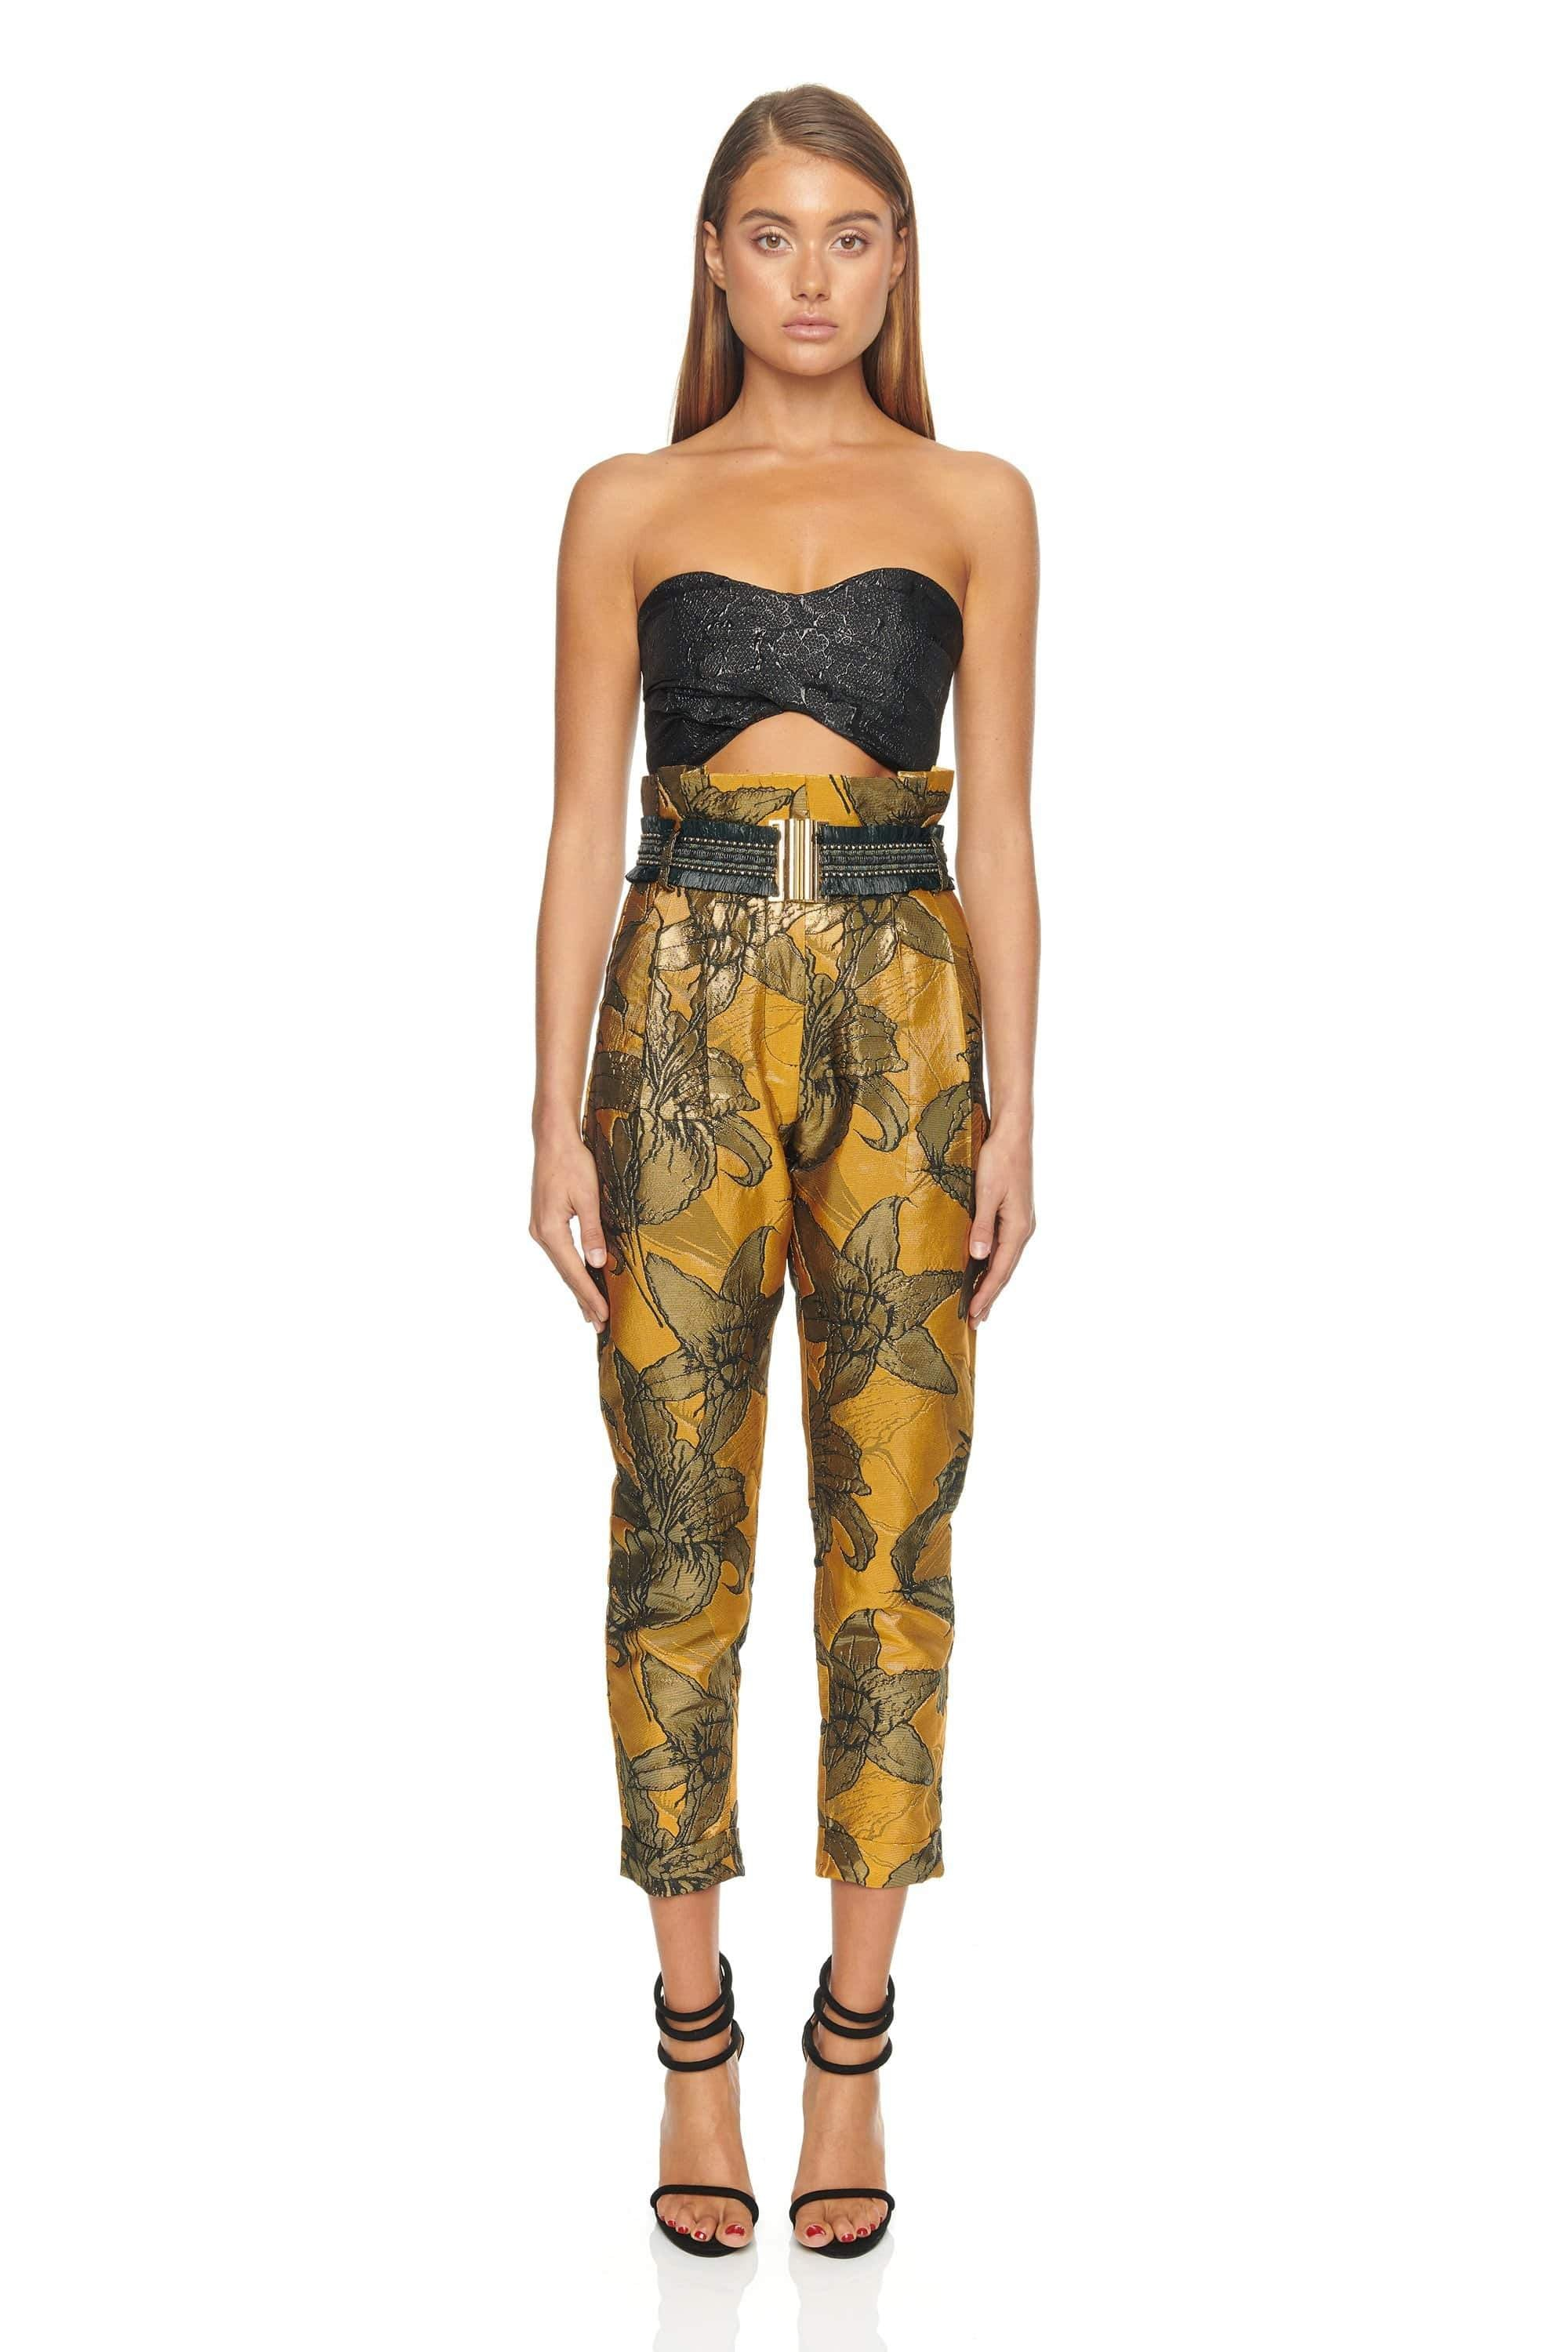 ARIZONA PANTS - ELIYA THE LABEL